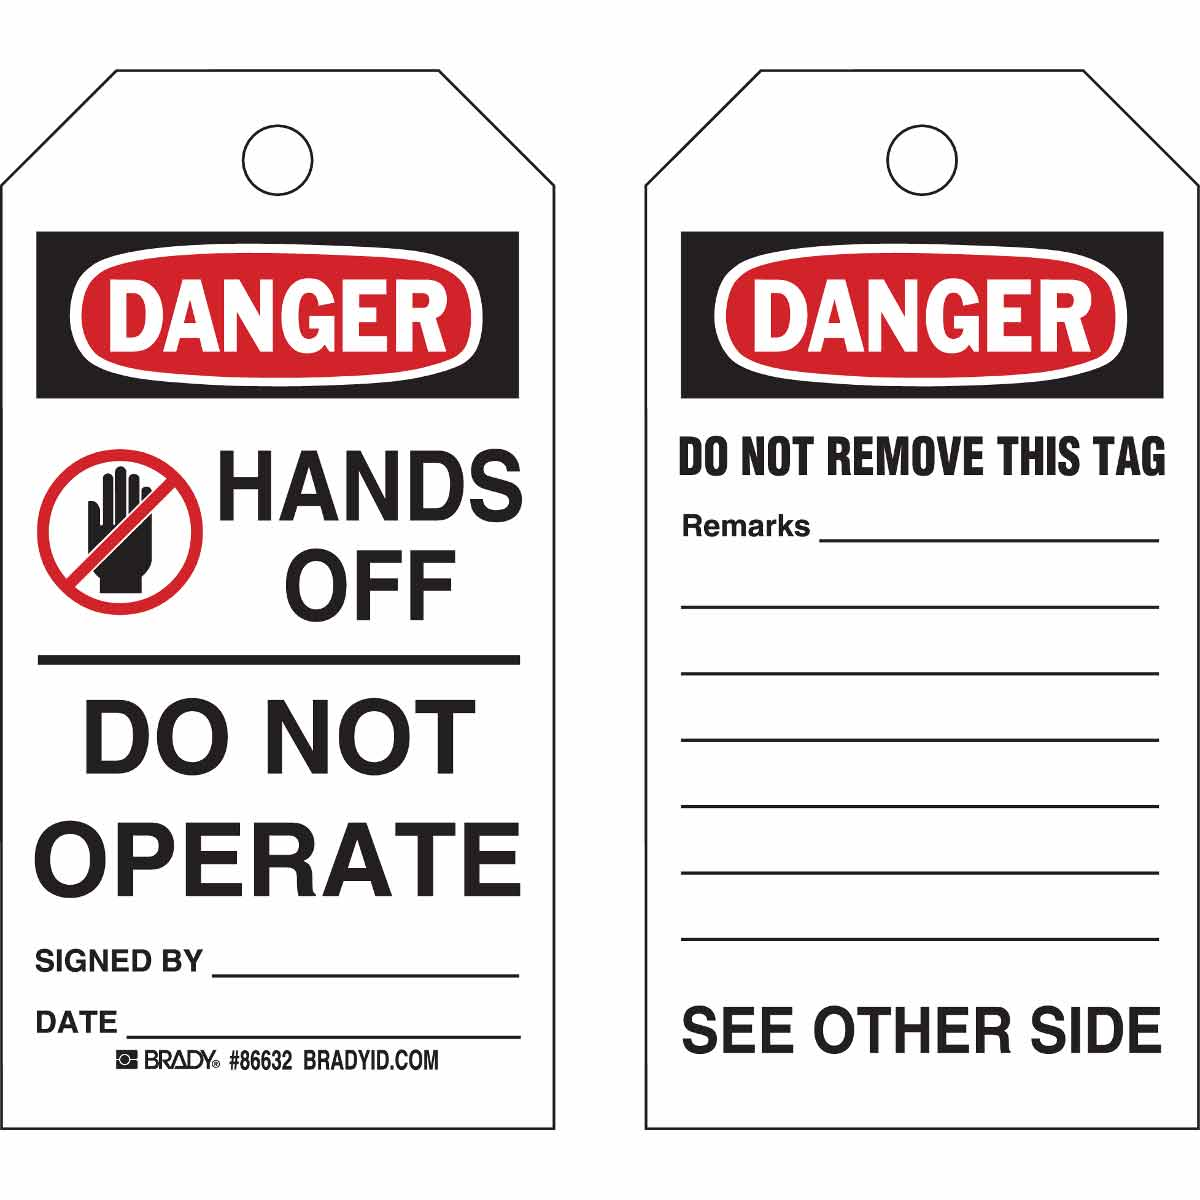 "Brady 86632 ""HANDS OFF - DO NOT OPERATE"" Accident Prevention Tag, Cardstock (100/Pkg)"